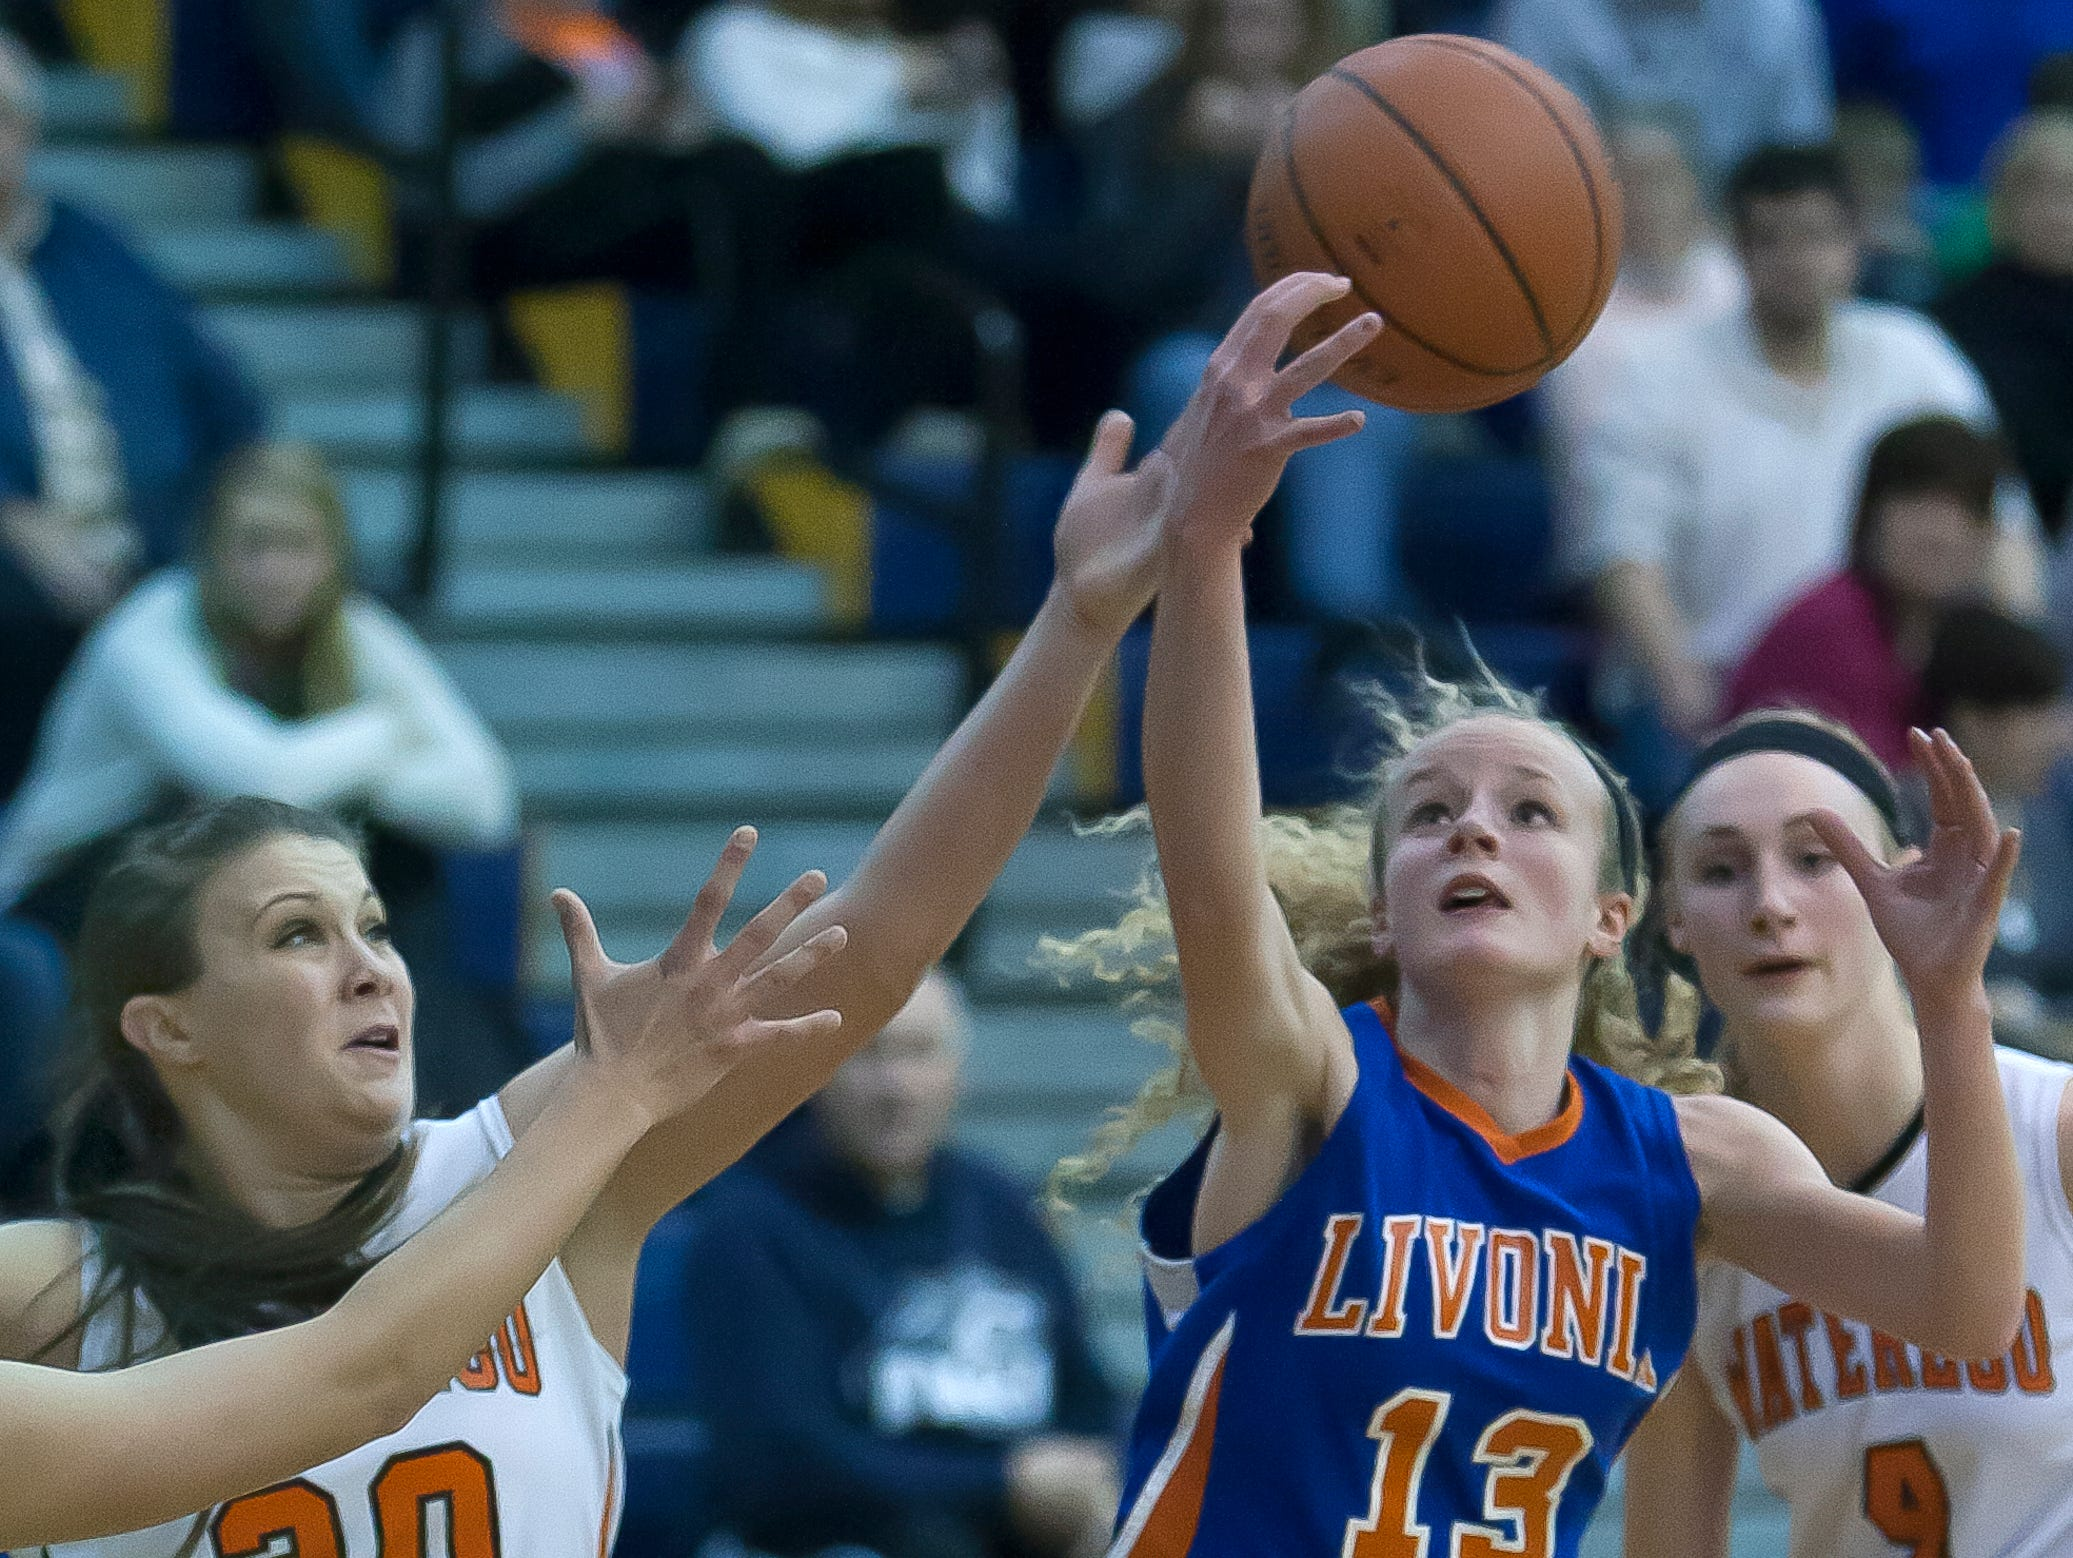 Waterloo's Chelsea France and Livonia's Molly Stewart reach for a loose ball during a game last season.